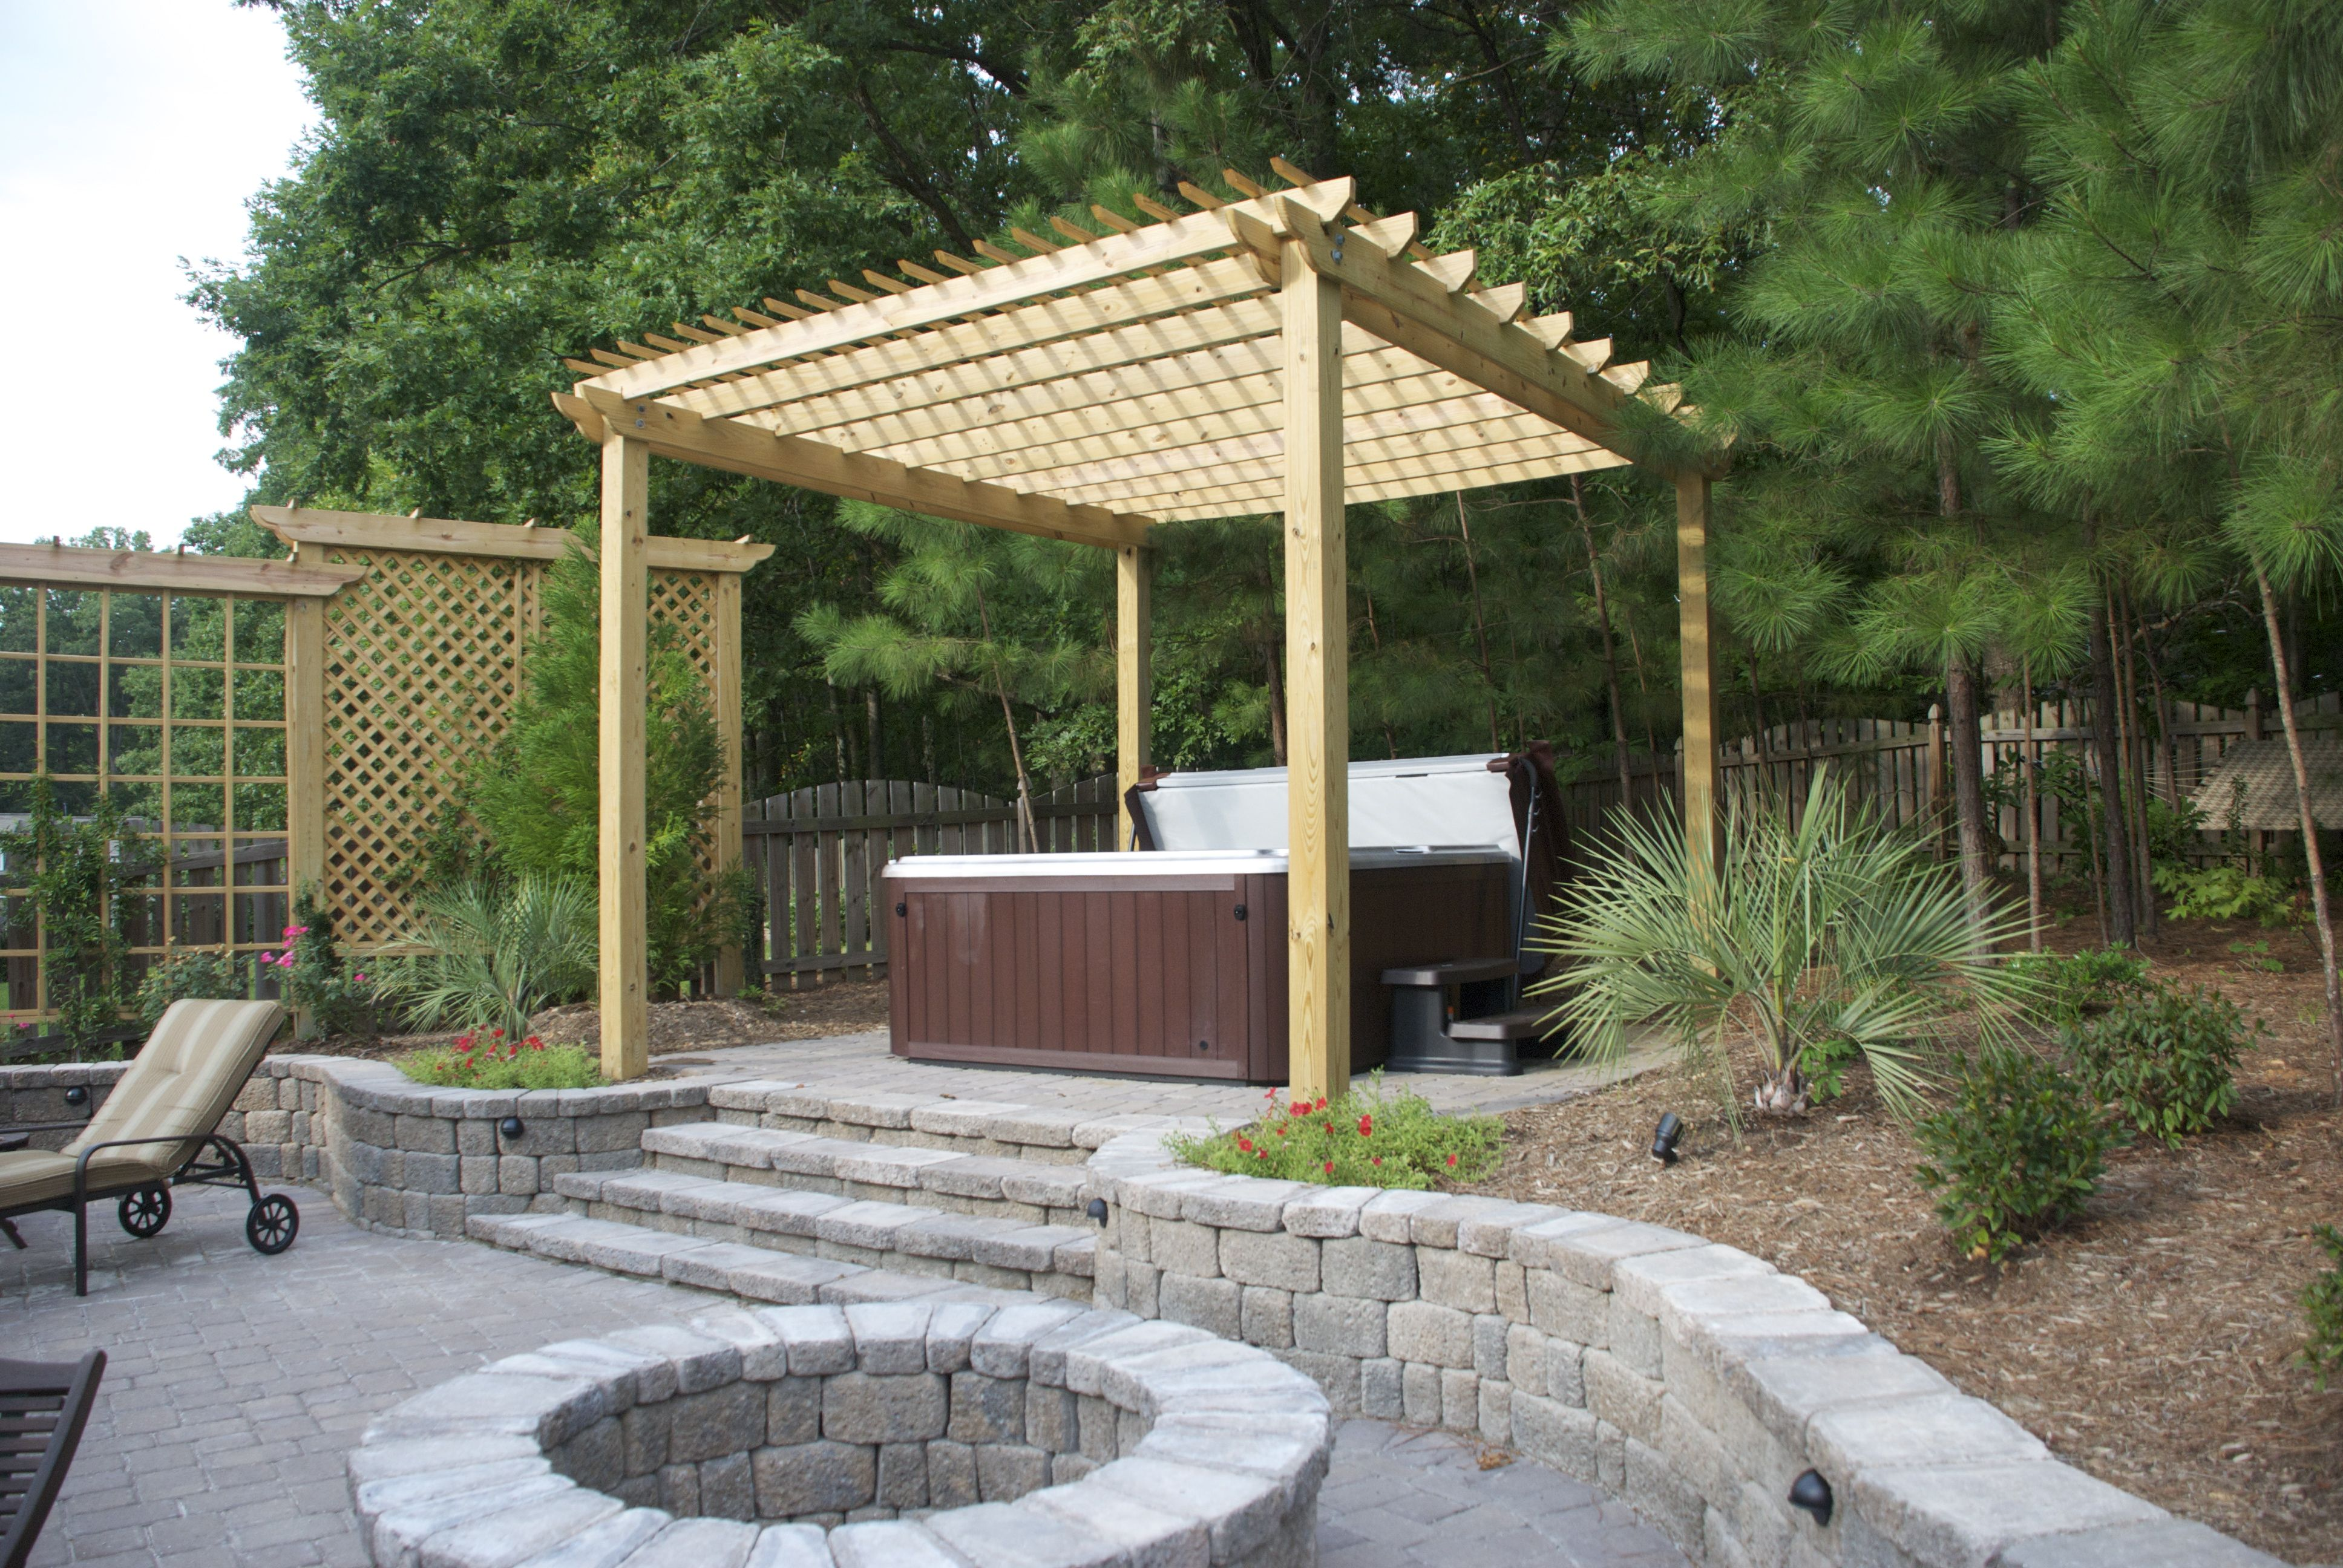 Installing Hot Tub In Backyard :  by Atlantic Spas and Billiards on Hot Tub Installations  Pintere